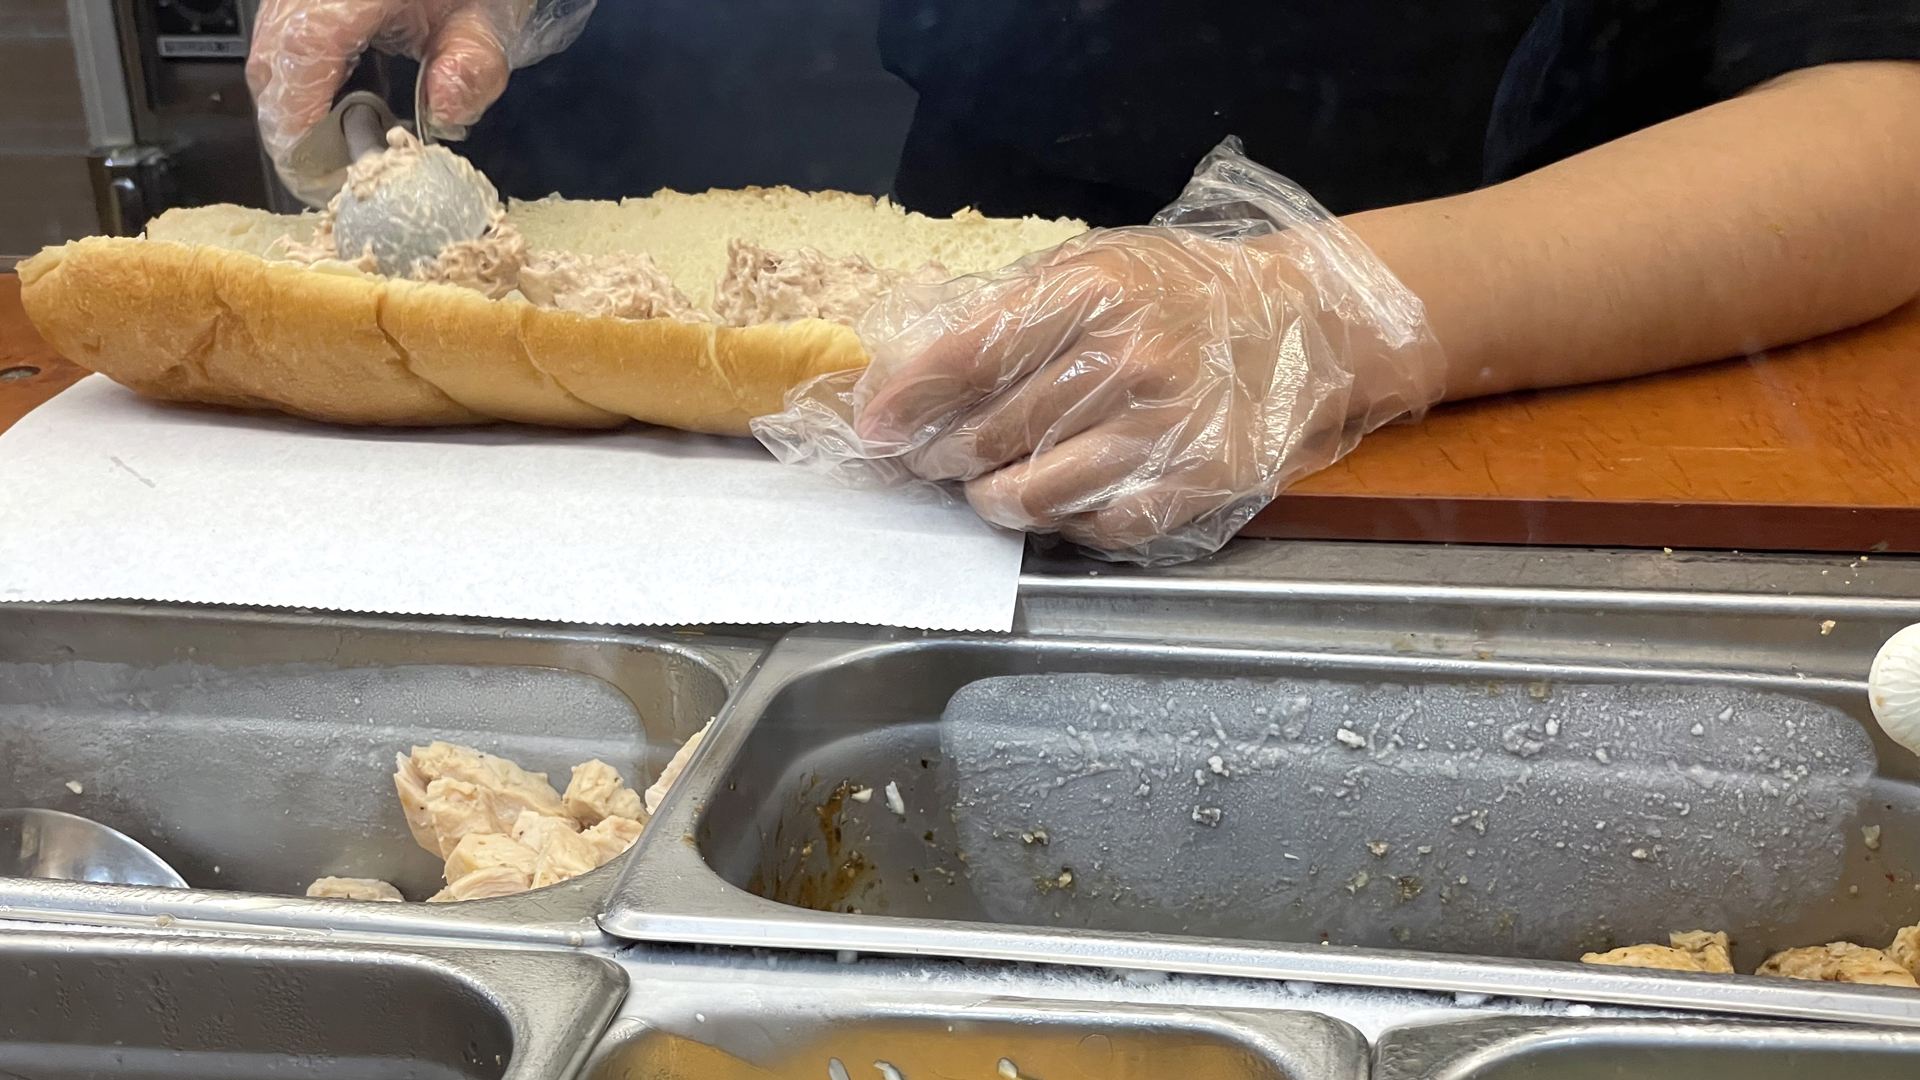 Subway's tuna sandwich has no tuna, tests of samples from L.A. area locations find